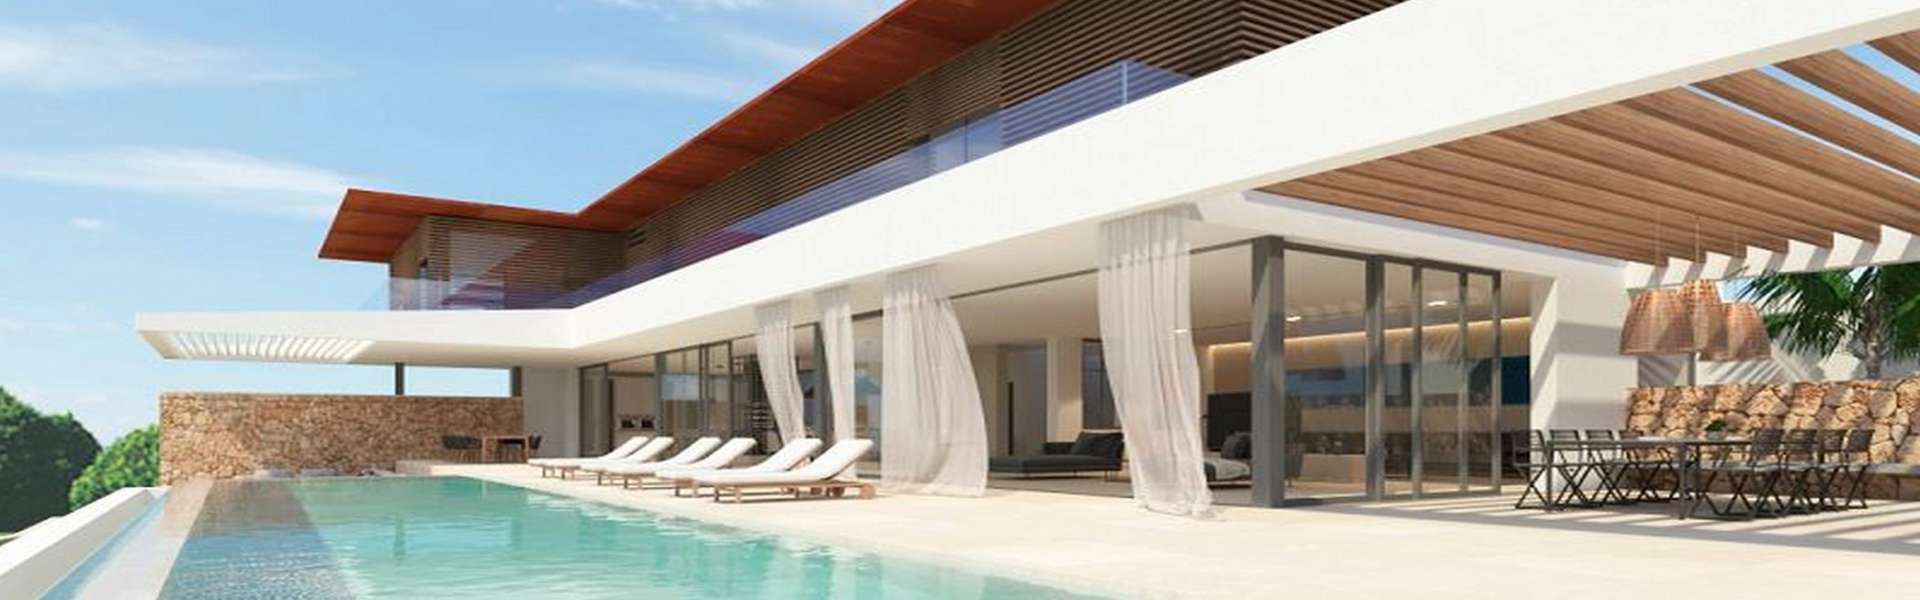 Cala Vinyes - New construction project with sea view